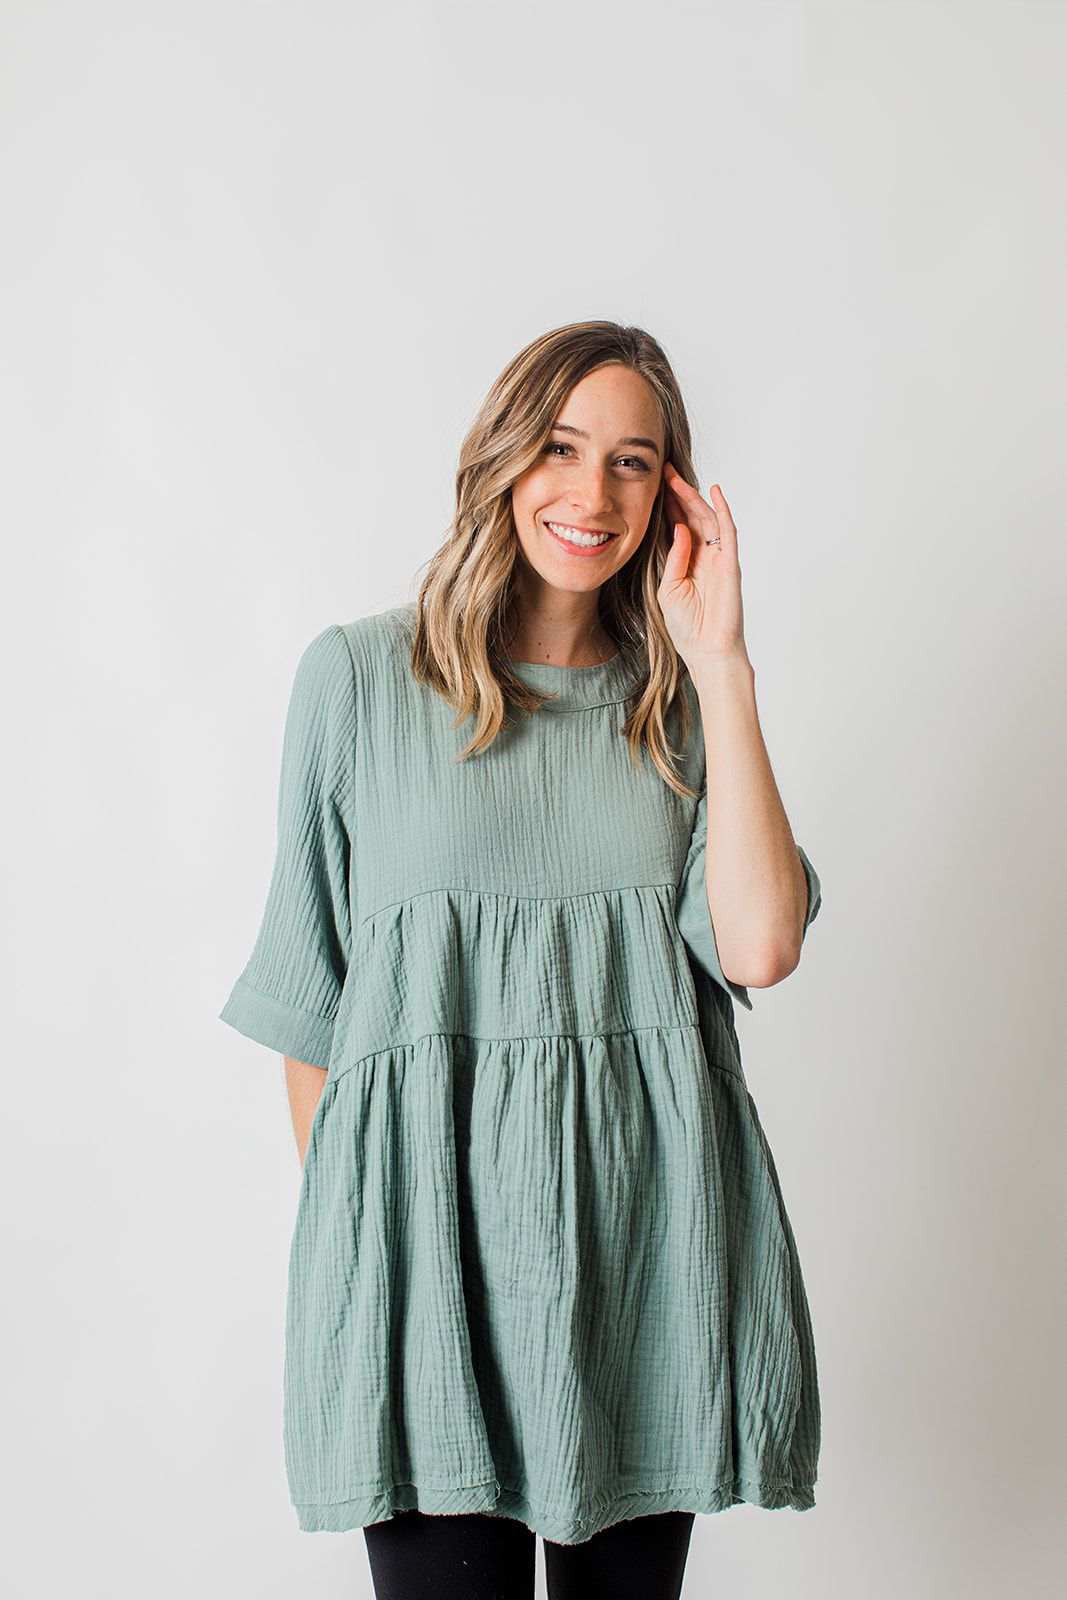 Sage Tunic Dress Tunic Dresses For Women With Leggings Dresses With Leggings Tunic Dress With Leggings Dresses [ 1600 x 1067 Pixel ]